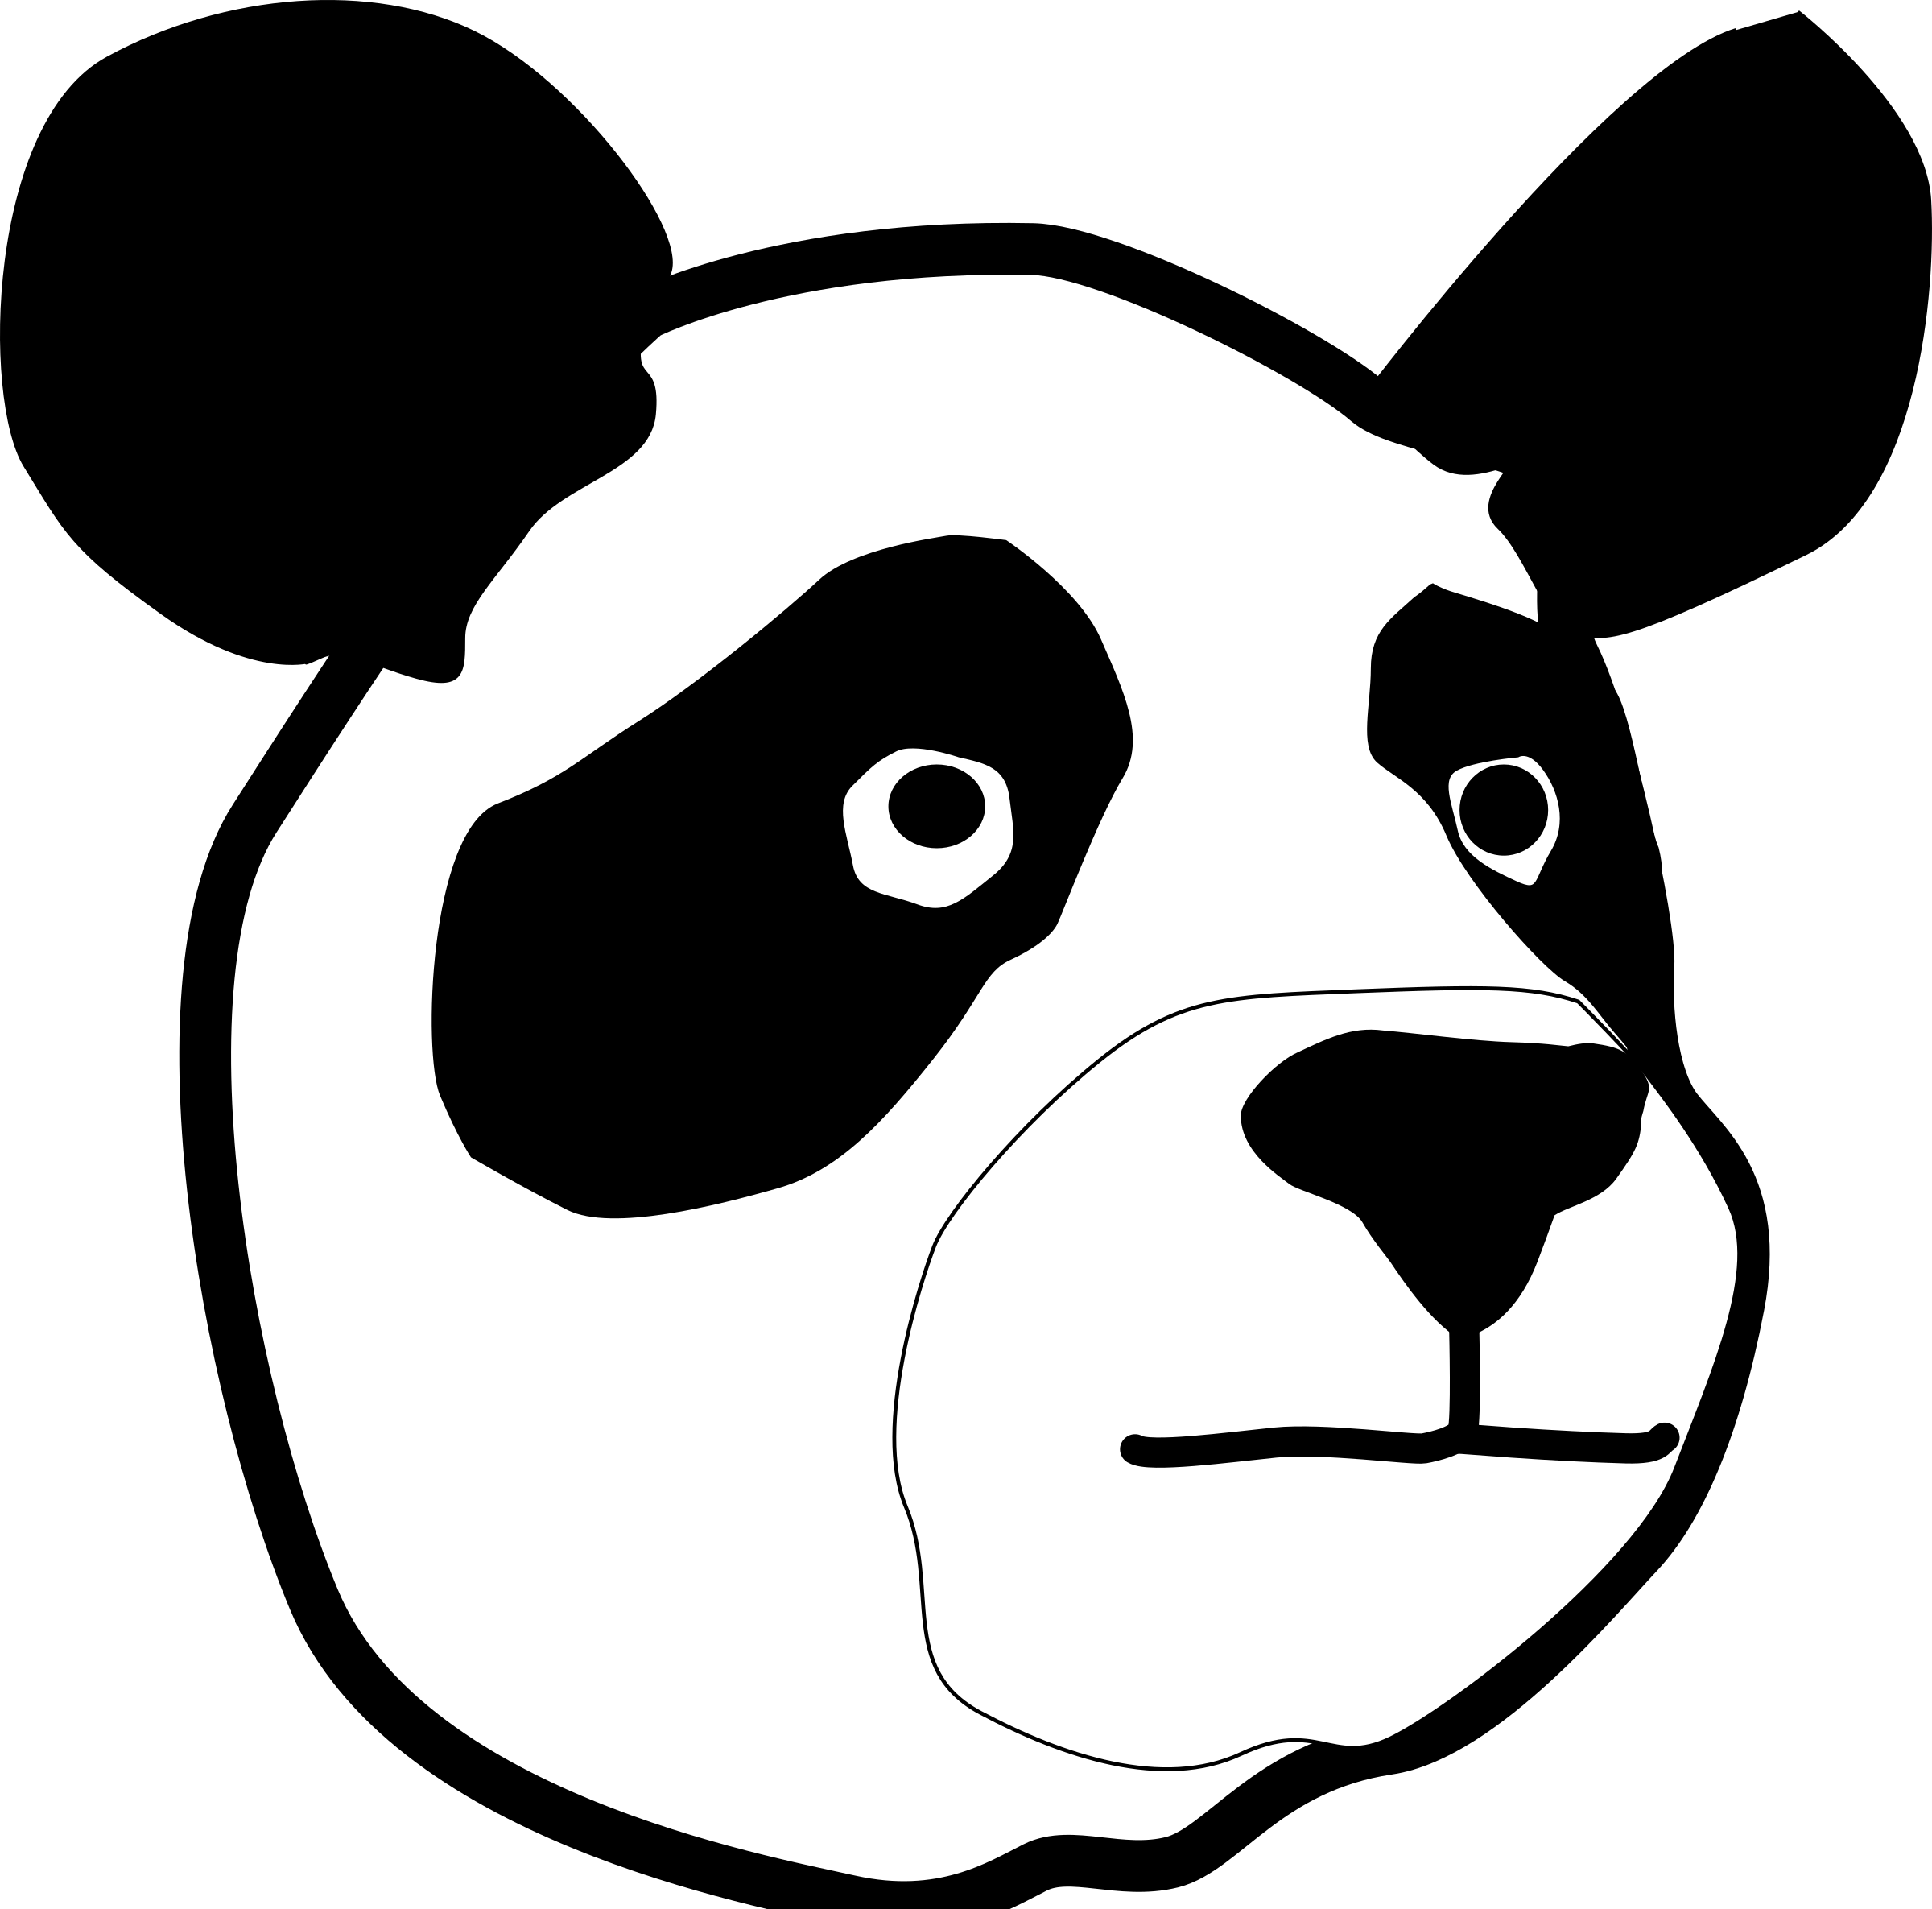 Panda Head by rejon